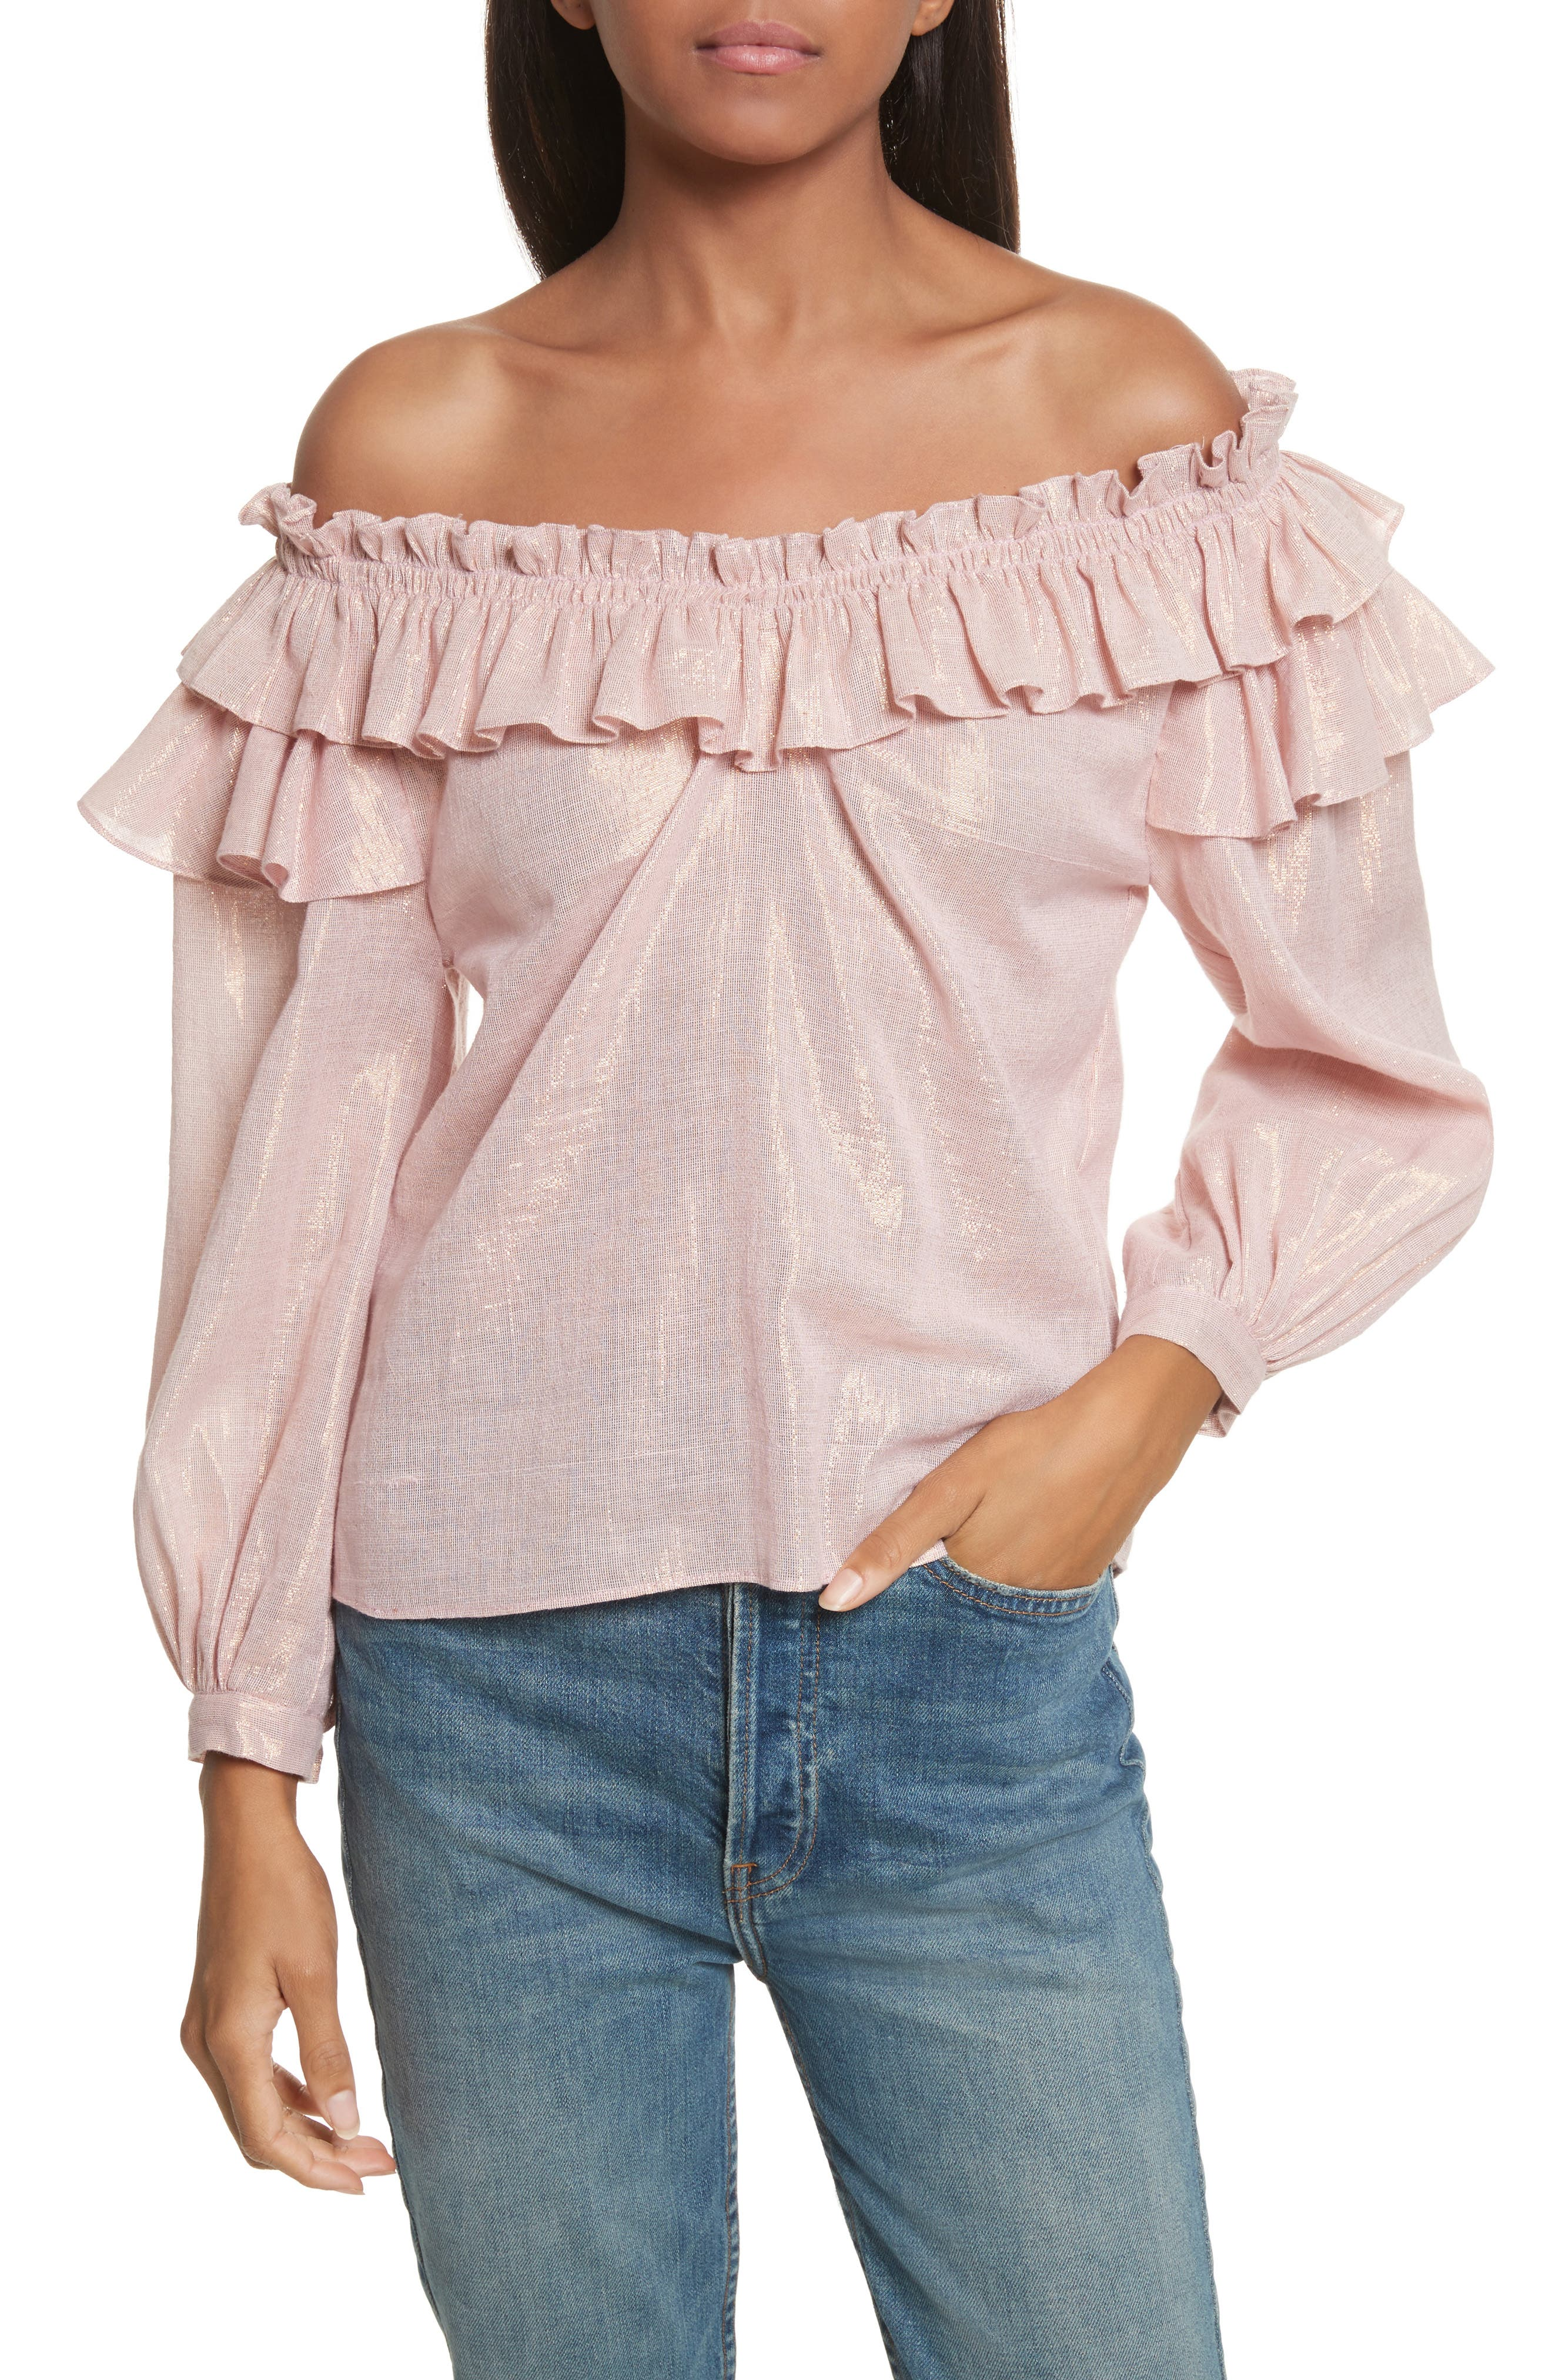 Alternate Image 1 Selected - La Vie Rebecca Taylor Off the Shoulder Metallic Ruffled Top